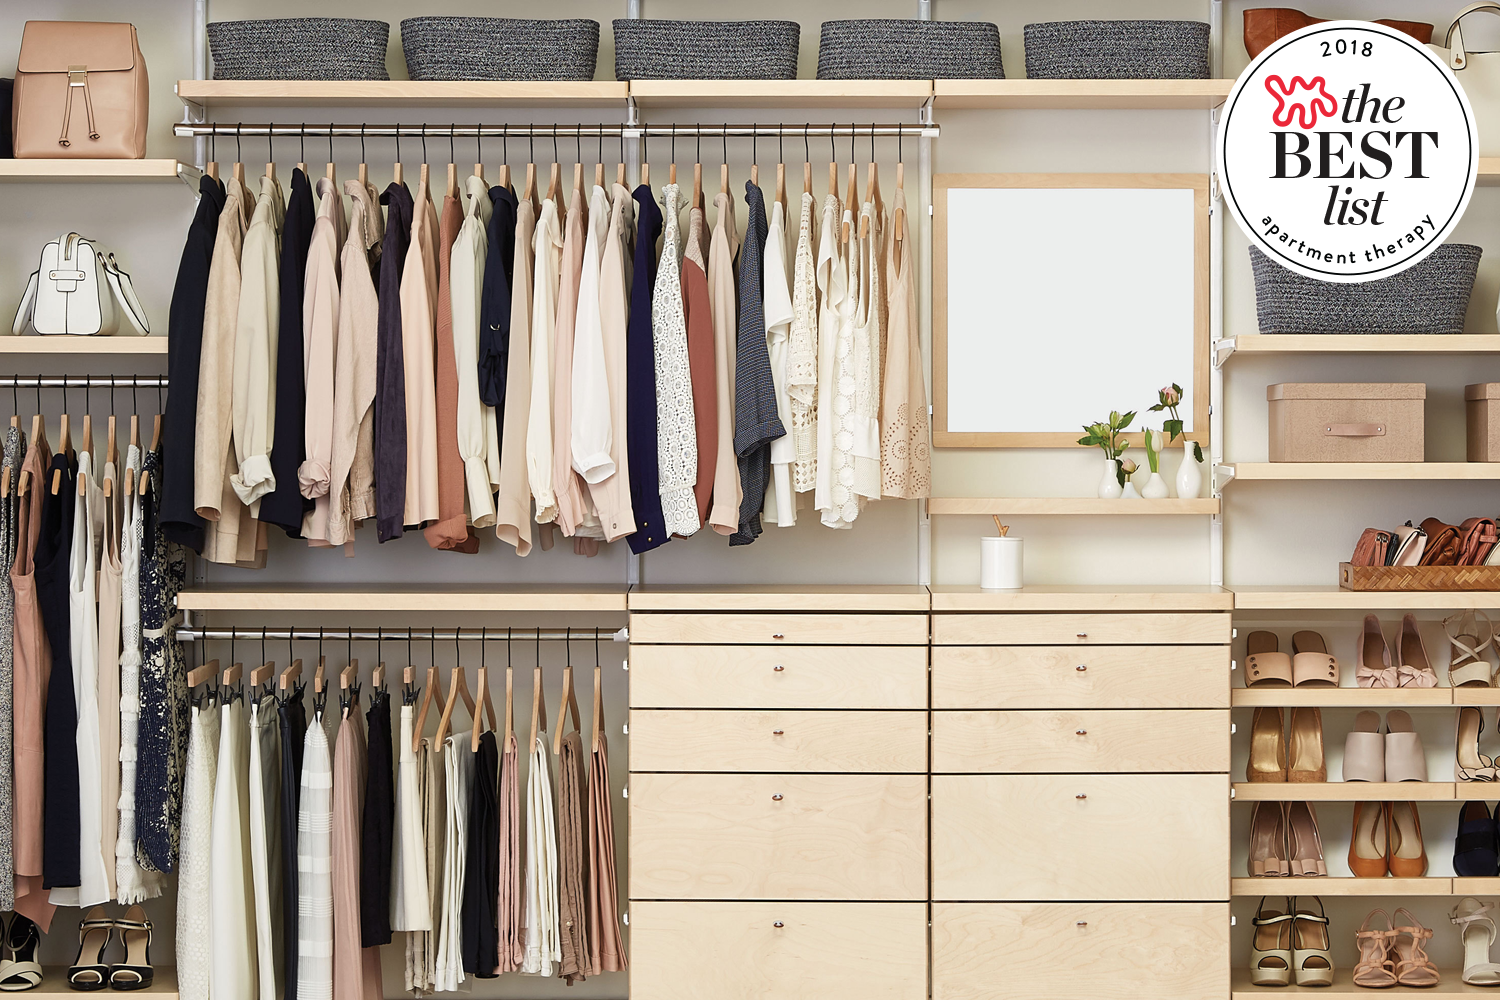 The Best Closet Systems Schrankdekoration Schrank Umgestalten